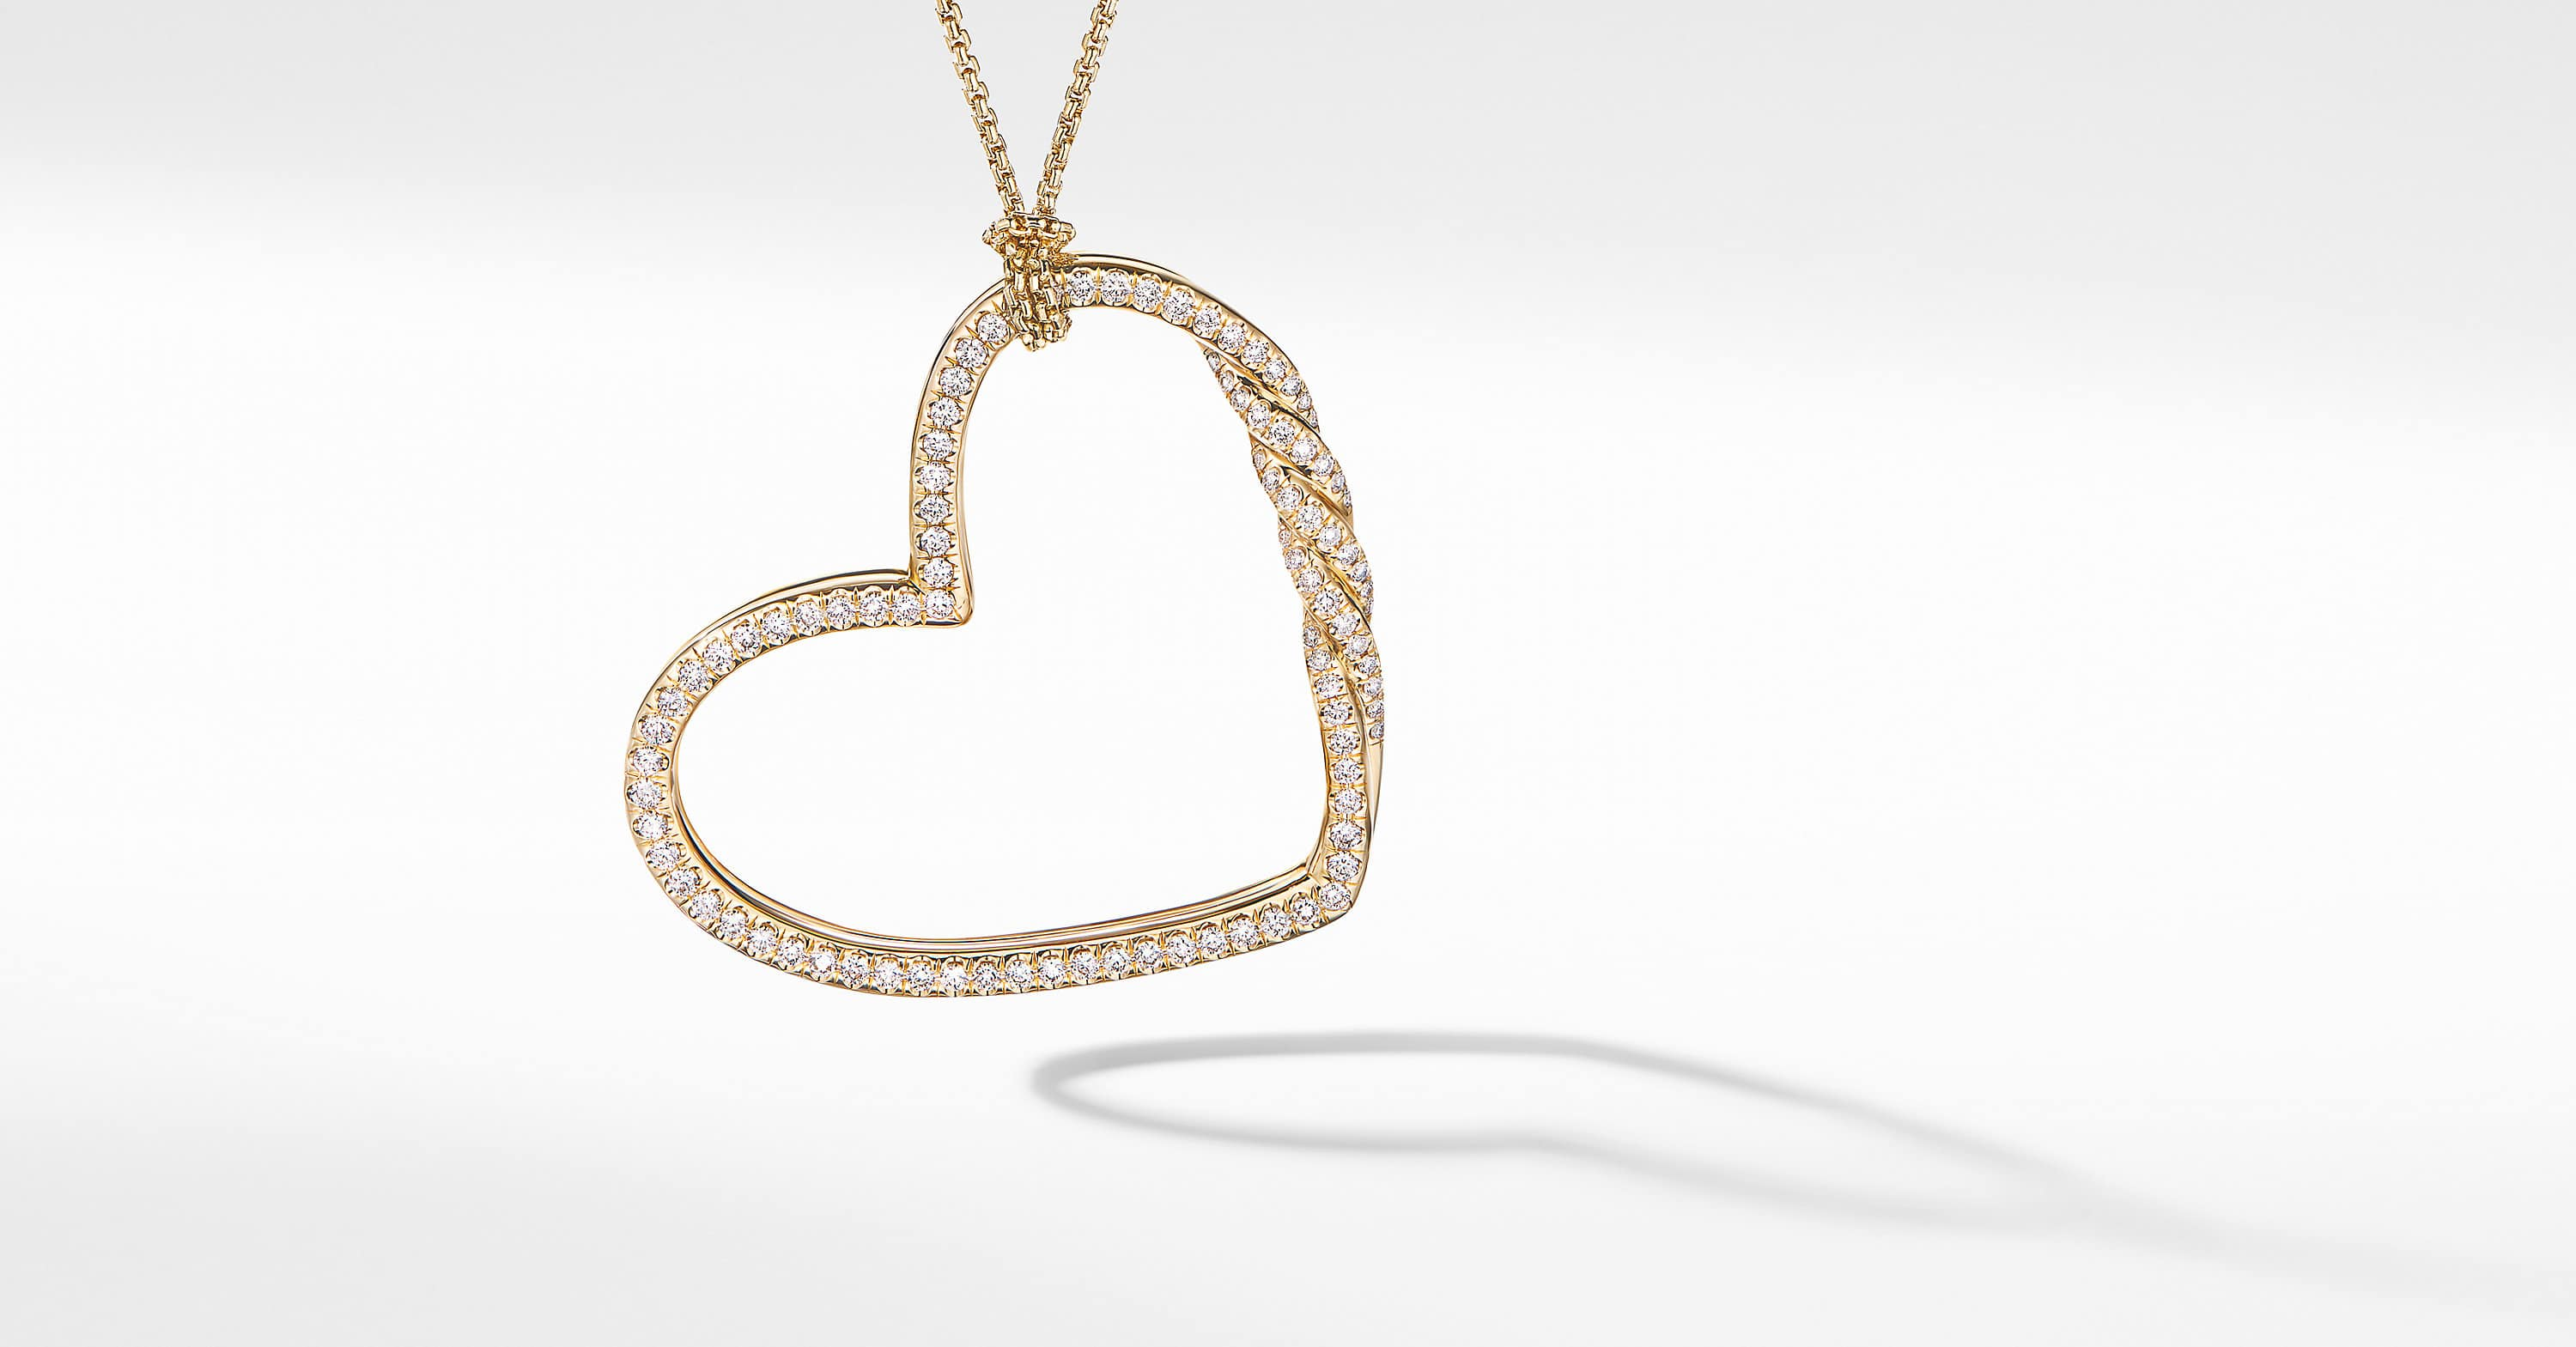 Continuance Heart Necklace in 18K Yellow Gold with Full Pavé